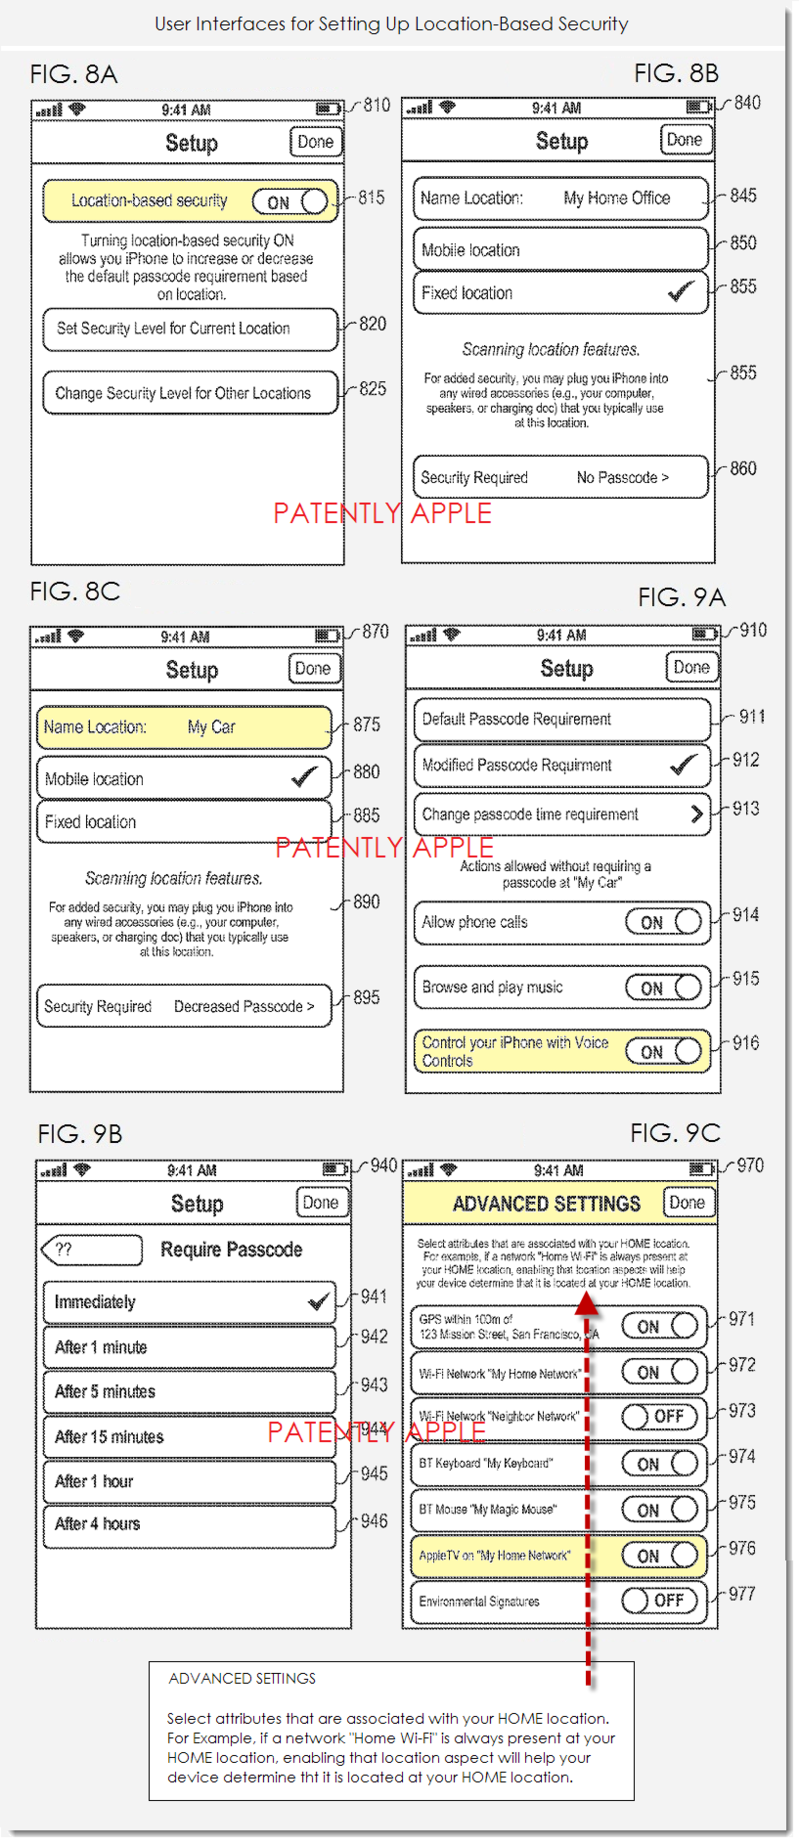 3AF FINAL - USER INTERFACES FOR LOCATION-BASED SECURITY - APPLE FIGS 8ABC & 9ABC